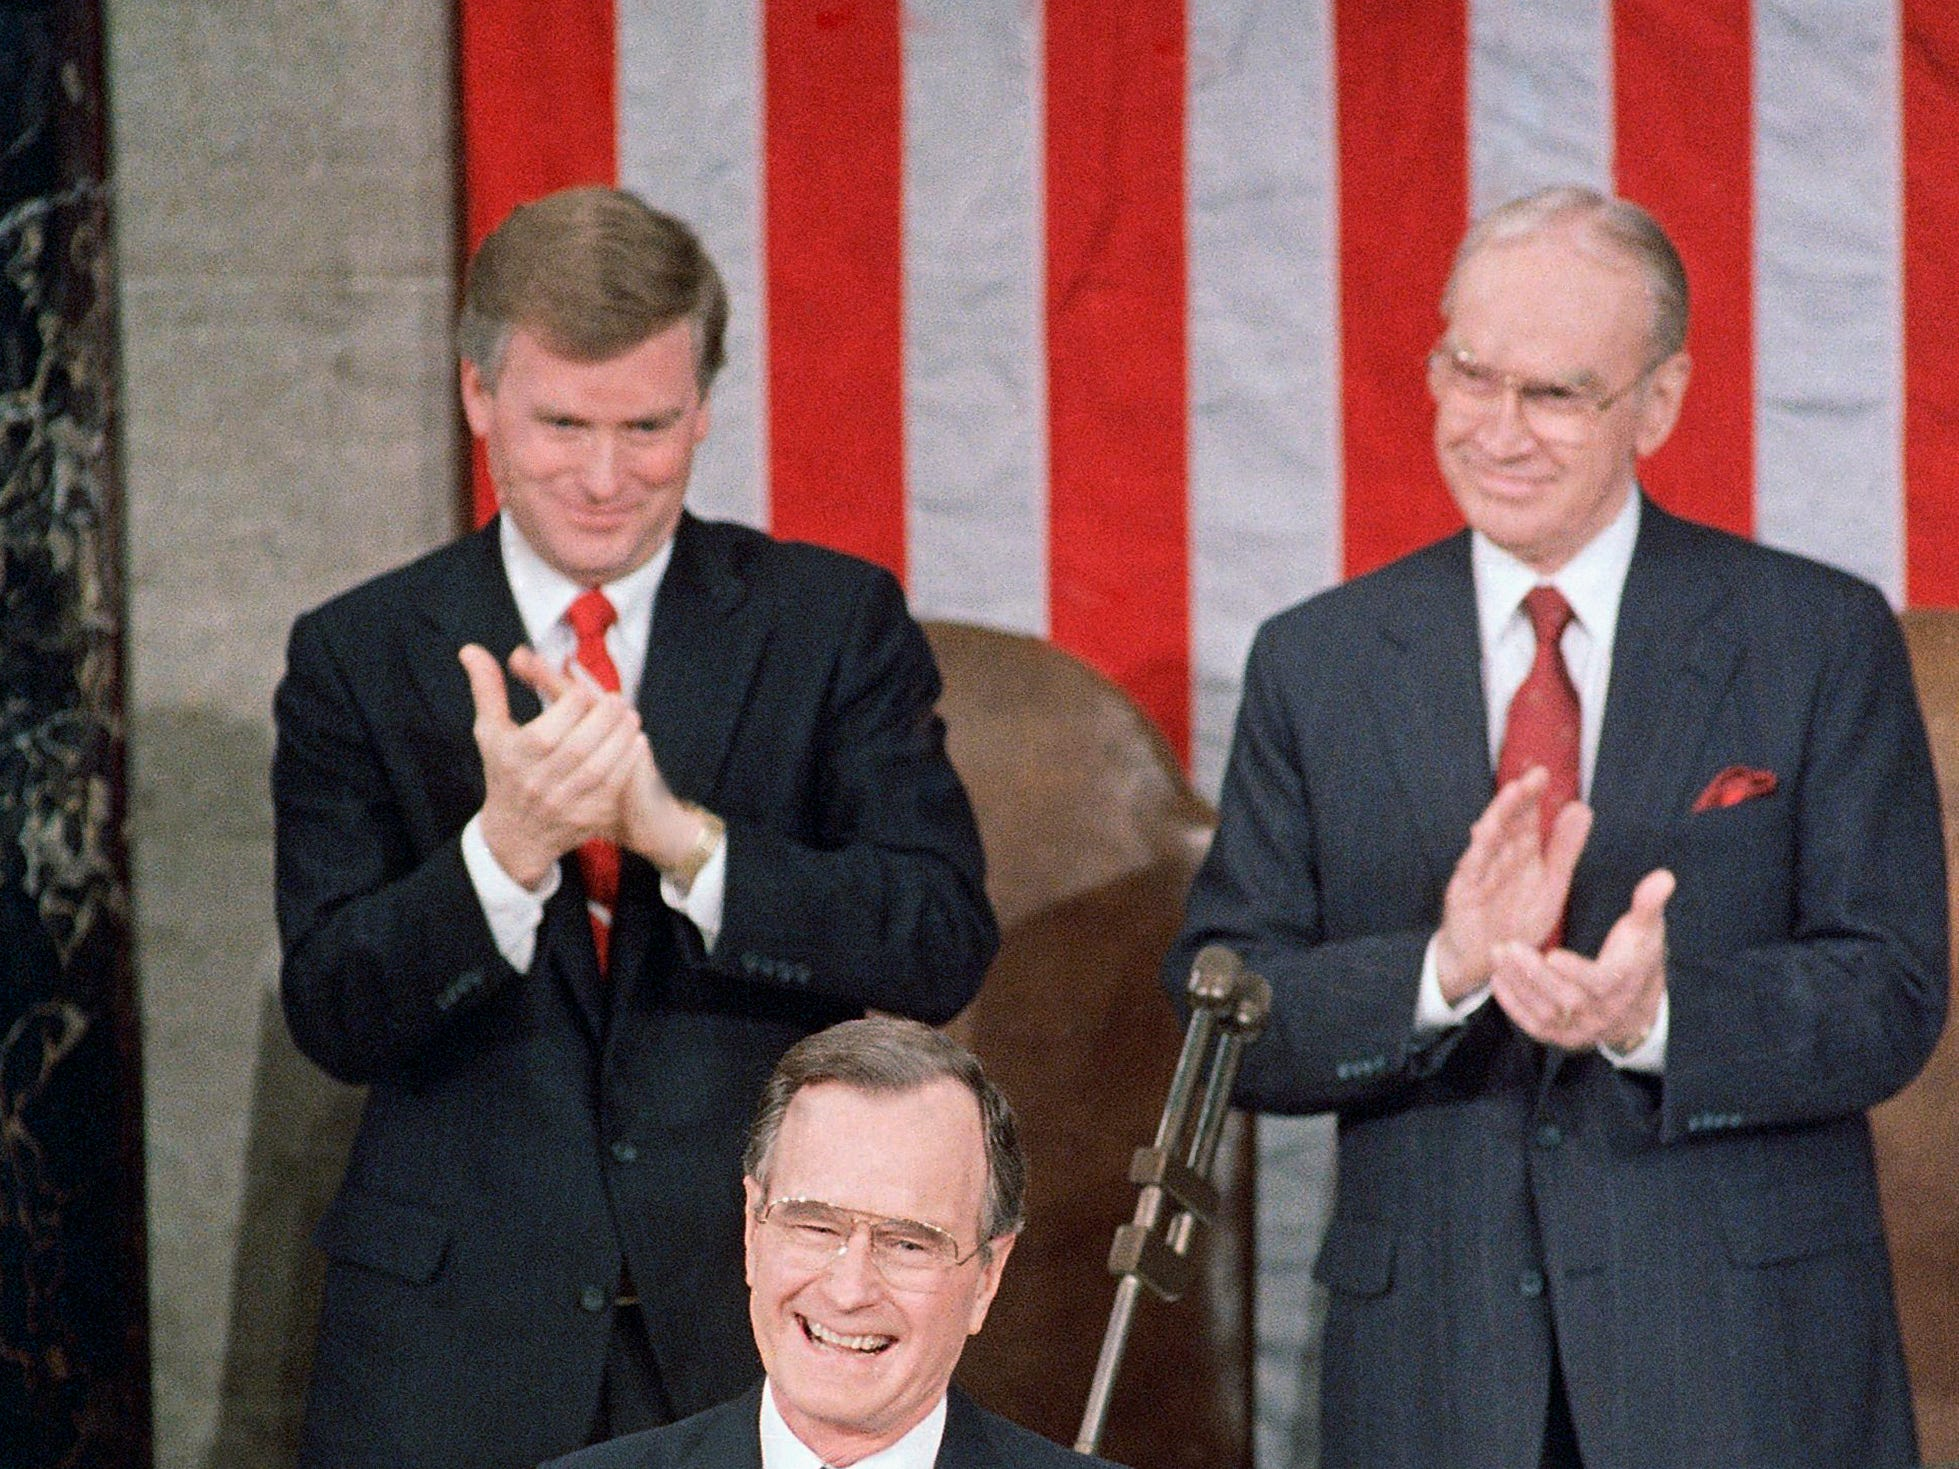 Pres. George H. W. Bush, front, acknowledges applause before addressing a Joint Session of Congress at the Capitol, Thursday, Feb. 9, 1989, Washington, D.C. Behind are Vice Pres. Dan Quayle and House Speaker Jim Wright. (AP Photo/Bob Daugherty)